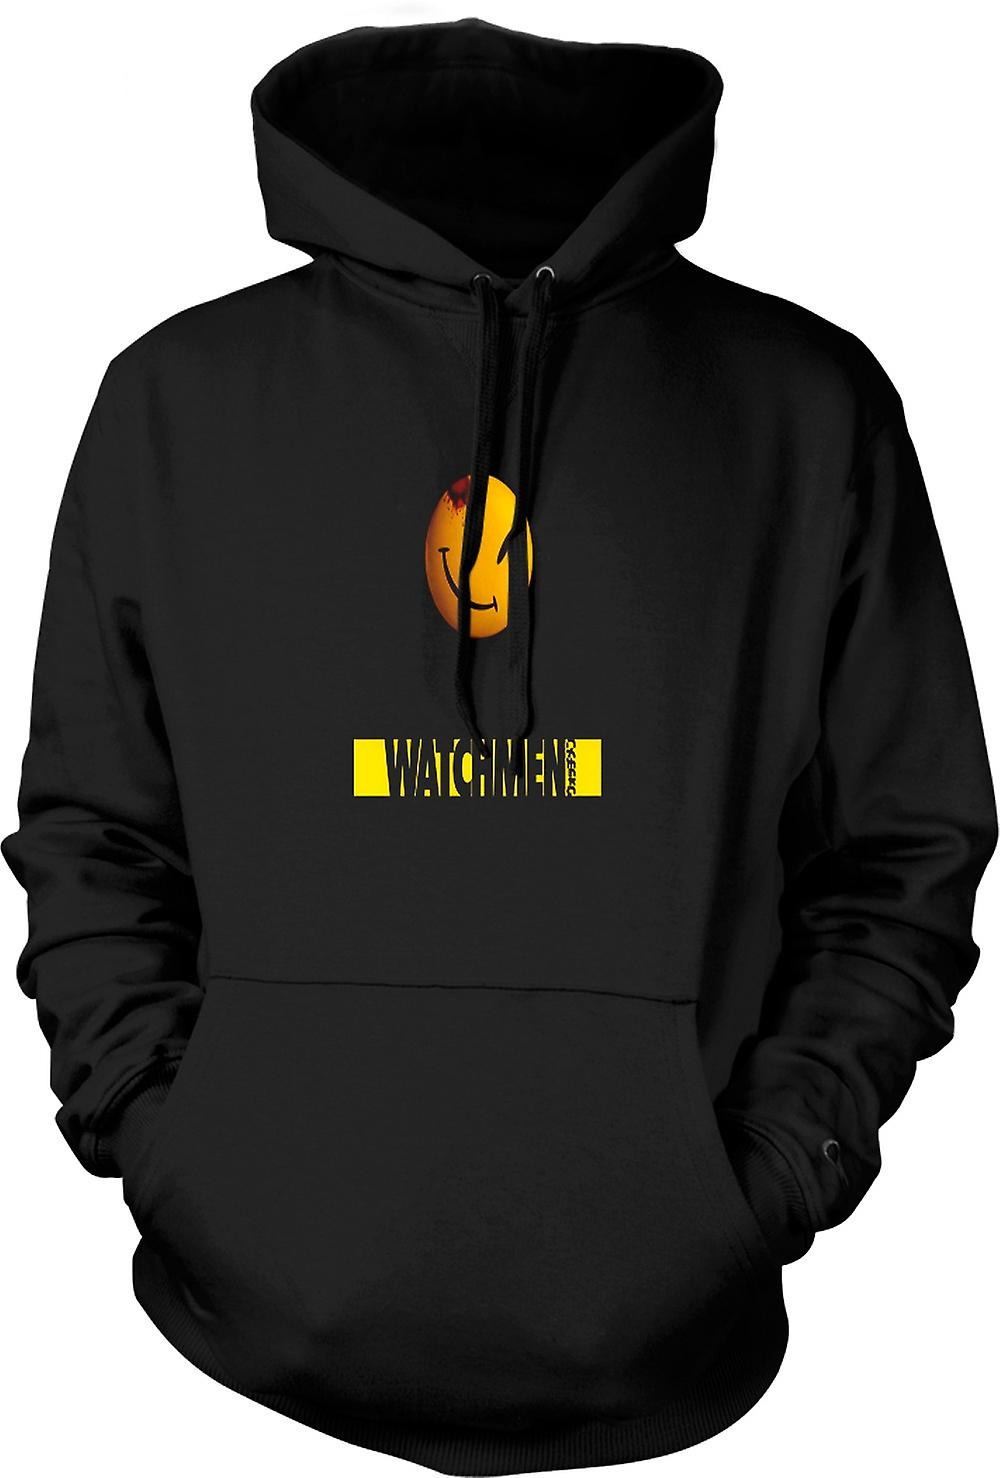 Mens Hoodie - Watchmen - Japanese Movie